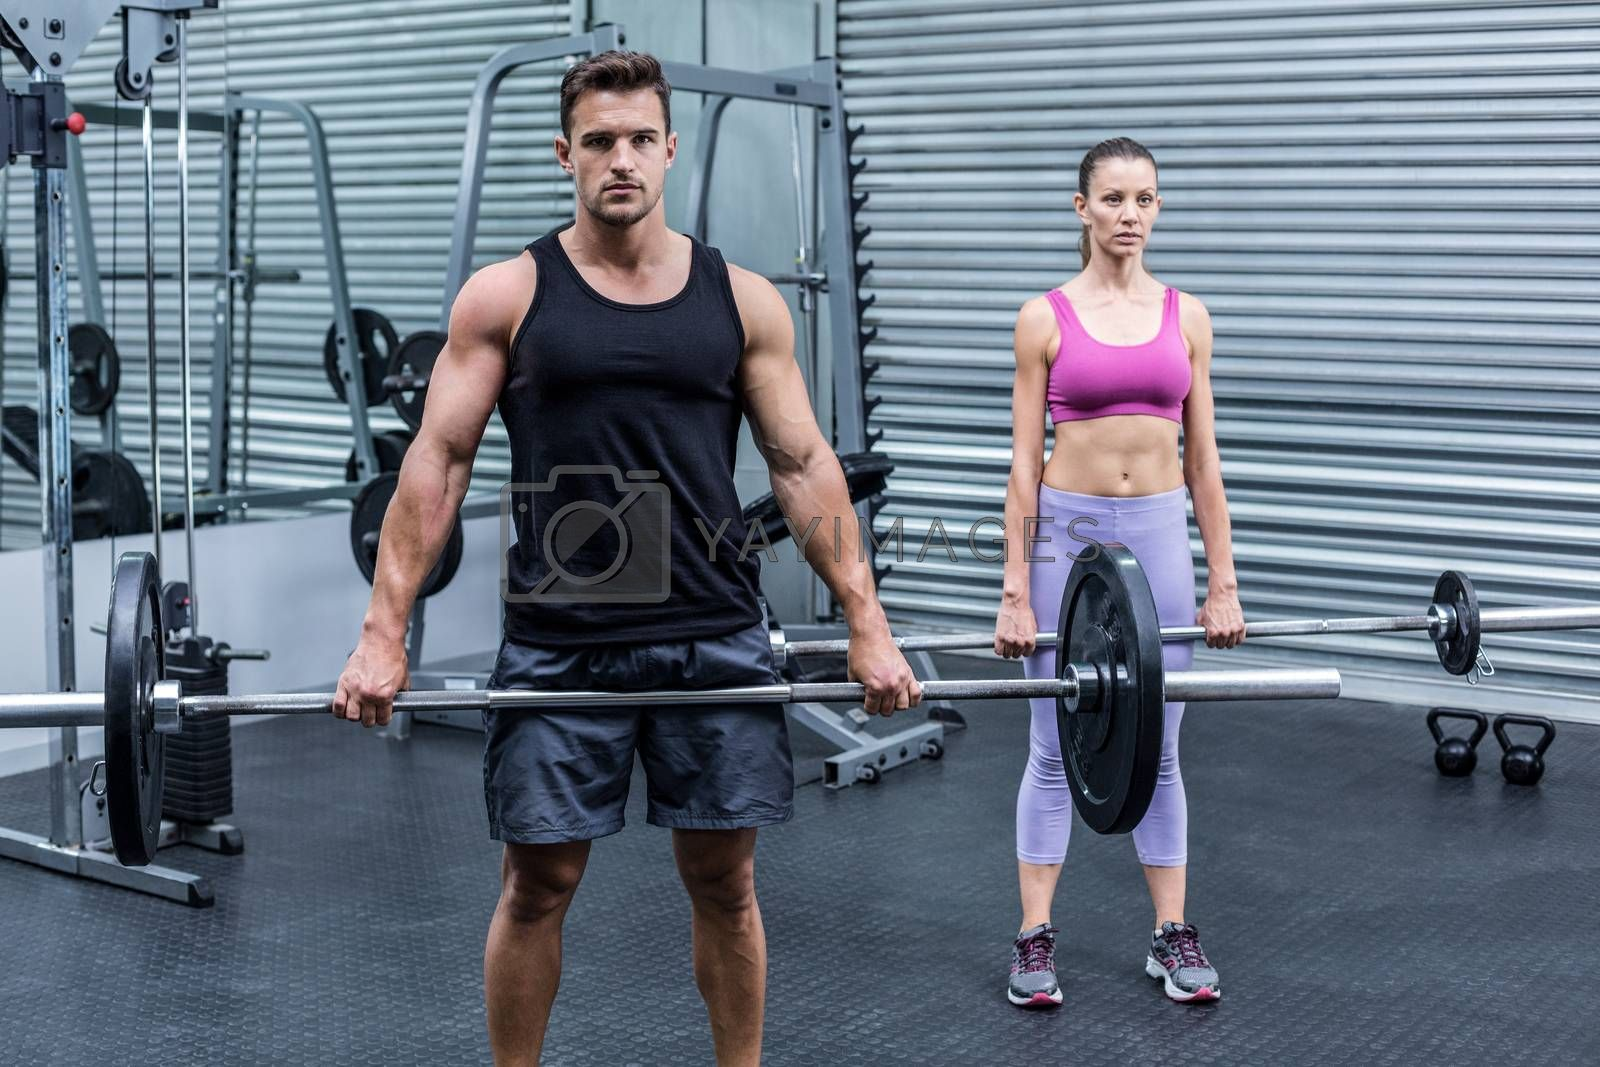 Muscular couple lifting weight together at the crossfit gym